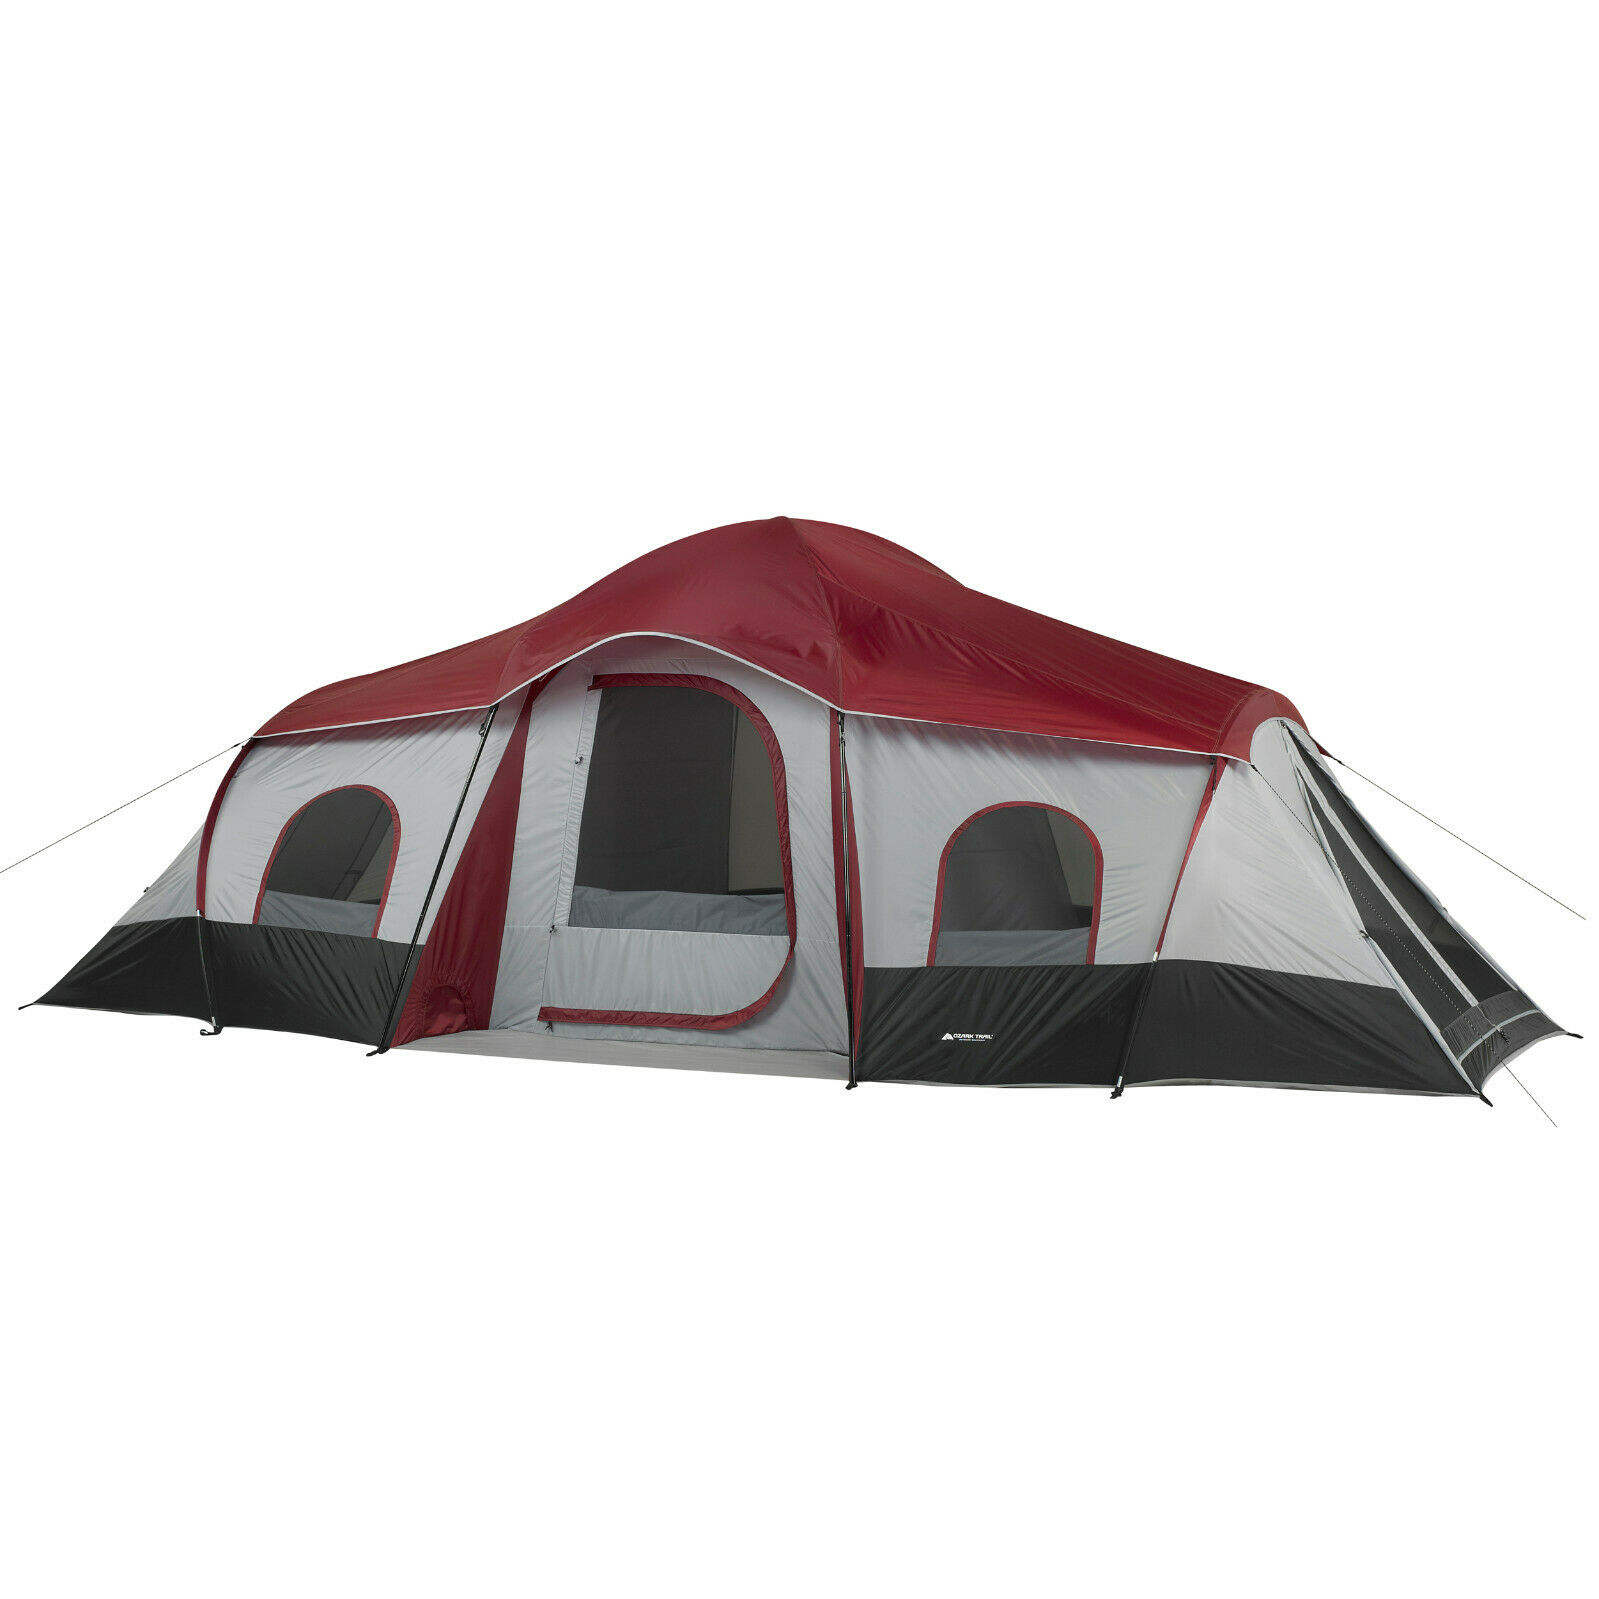 Awesom Trail 10-Person  3-Room Cabin Tent with 2 Side Entrances  free shipping